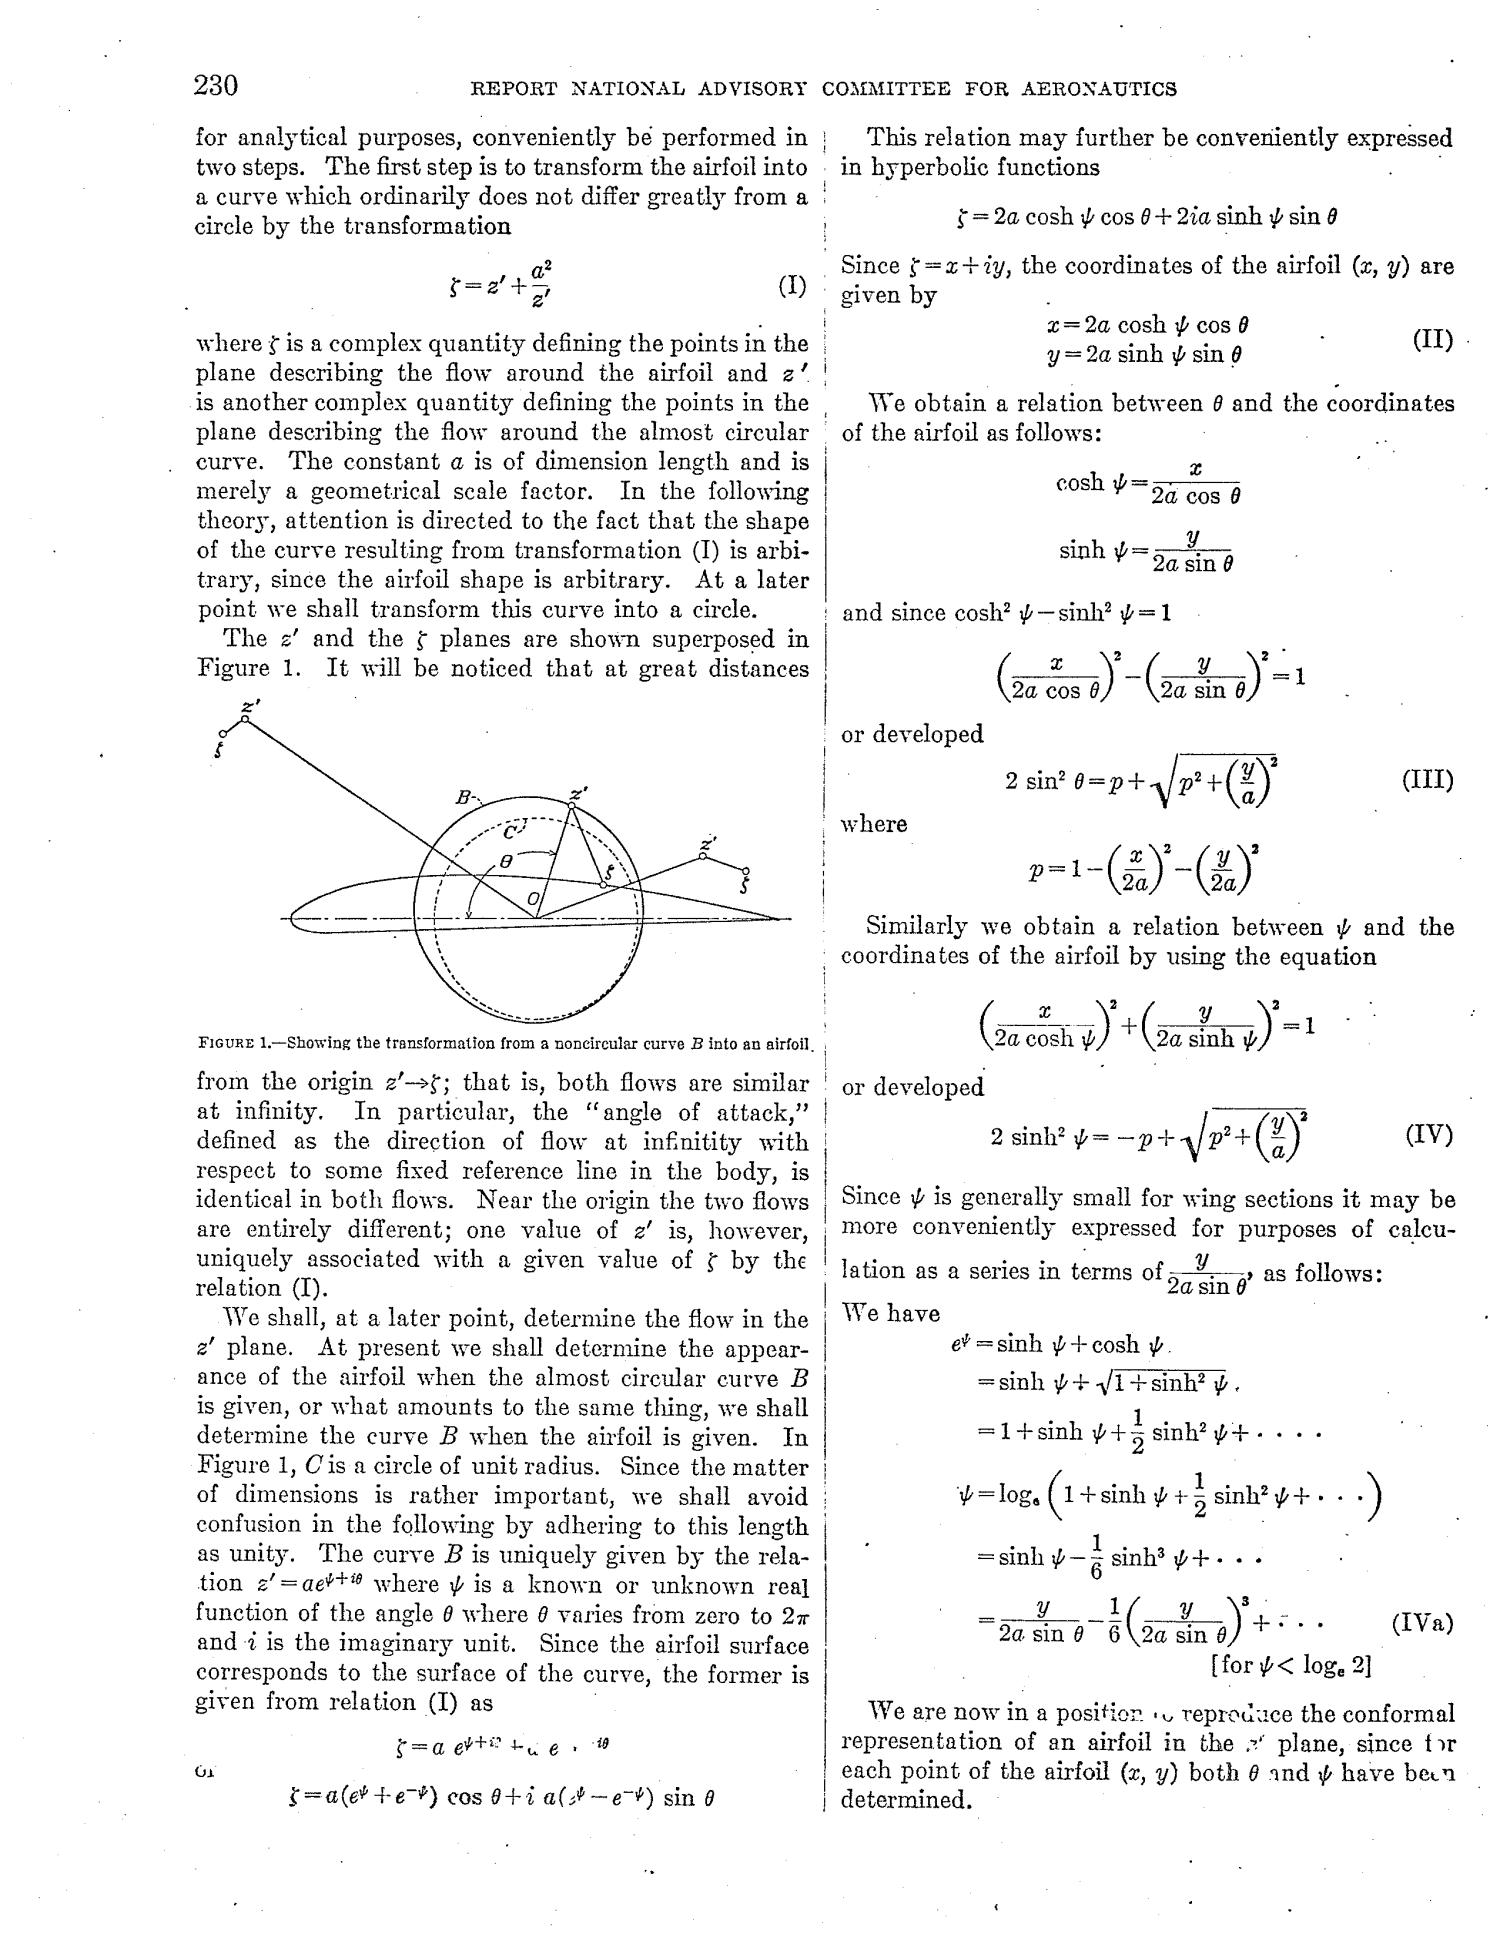 Theory of Wing Sections of Arbitrary Shape - Page 4 of 14 ...